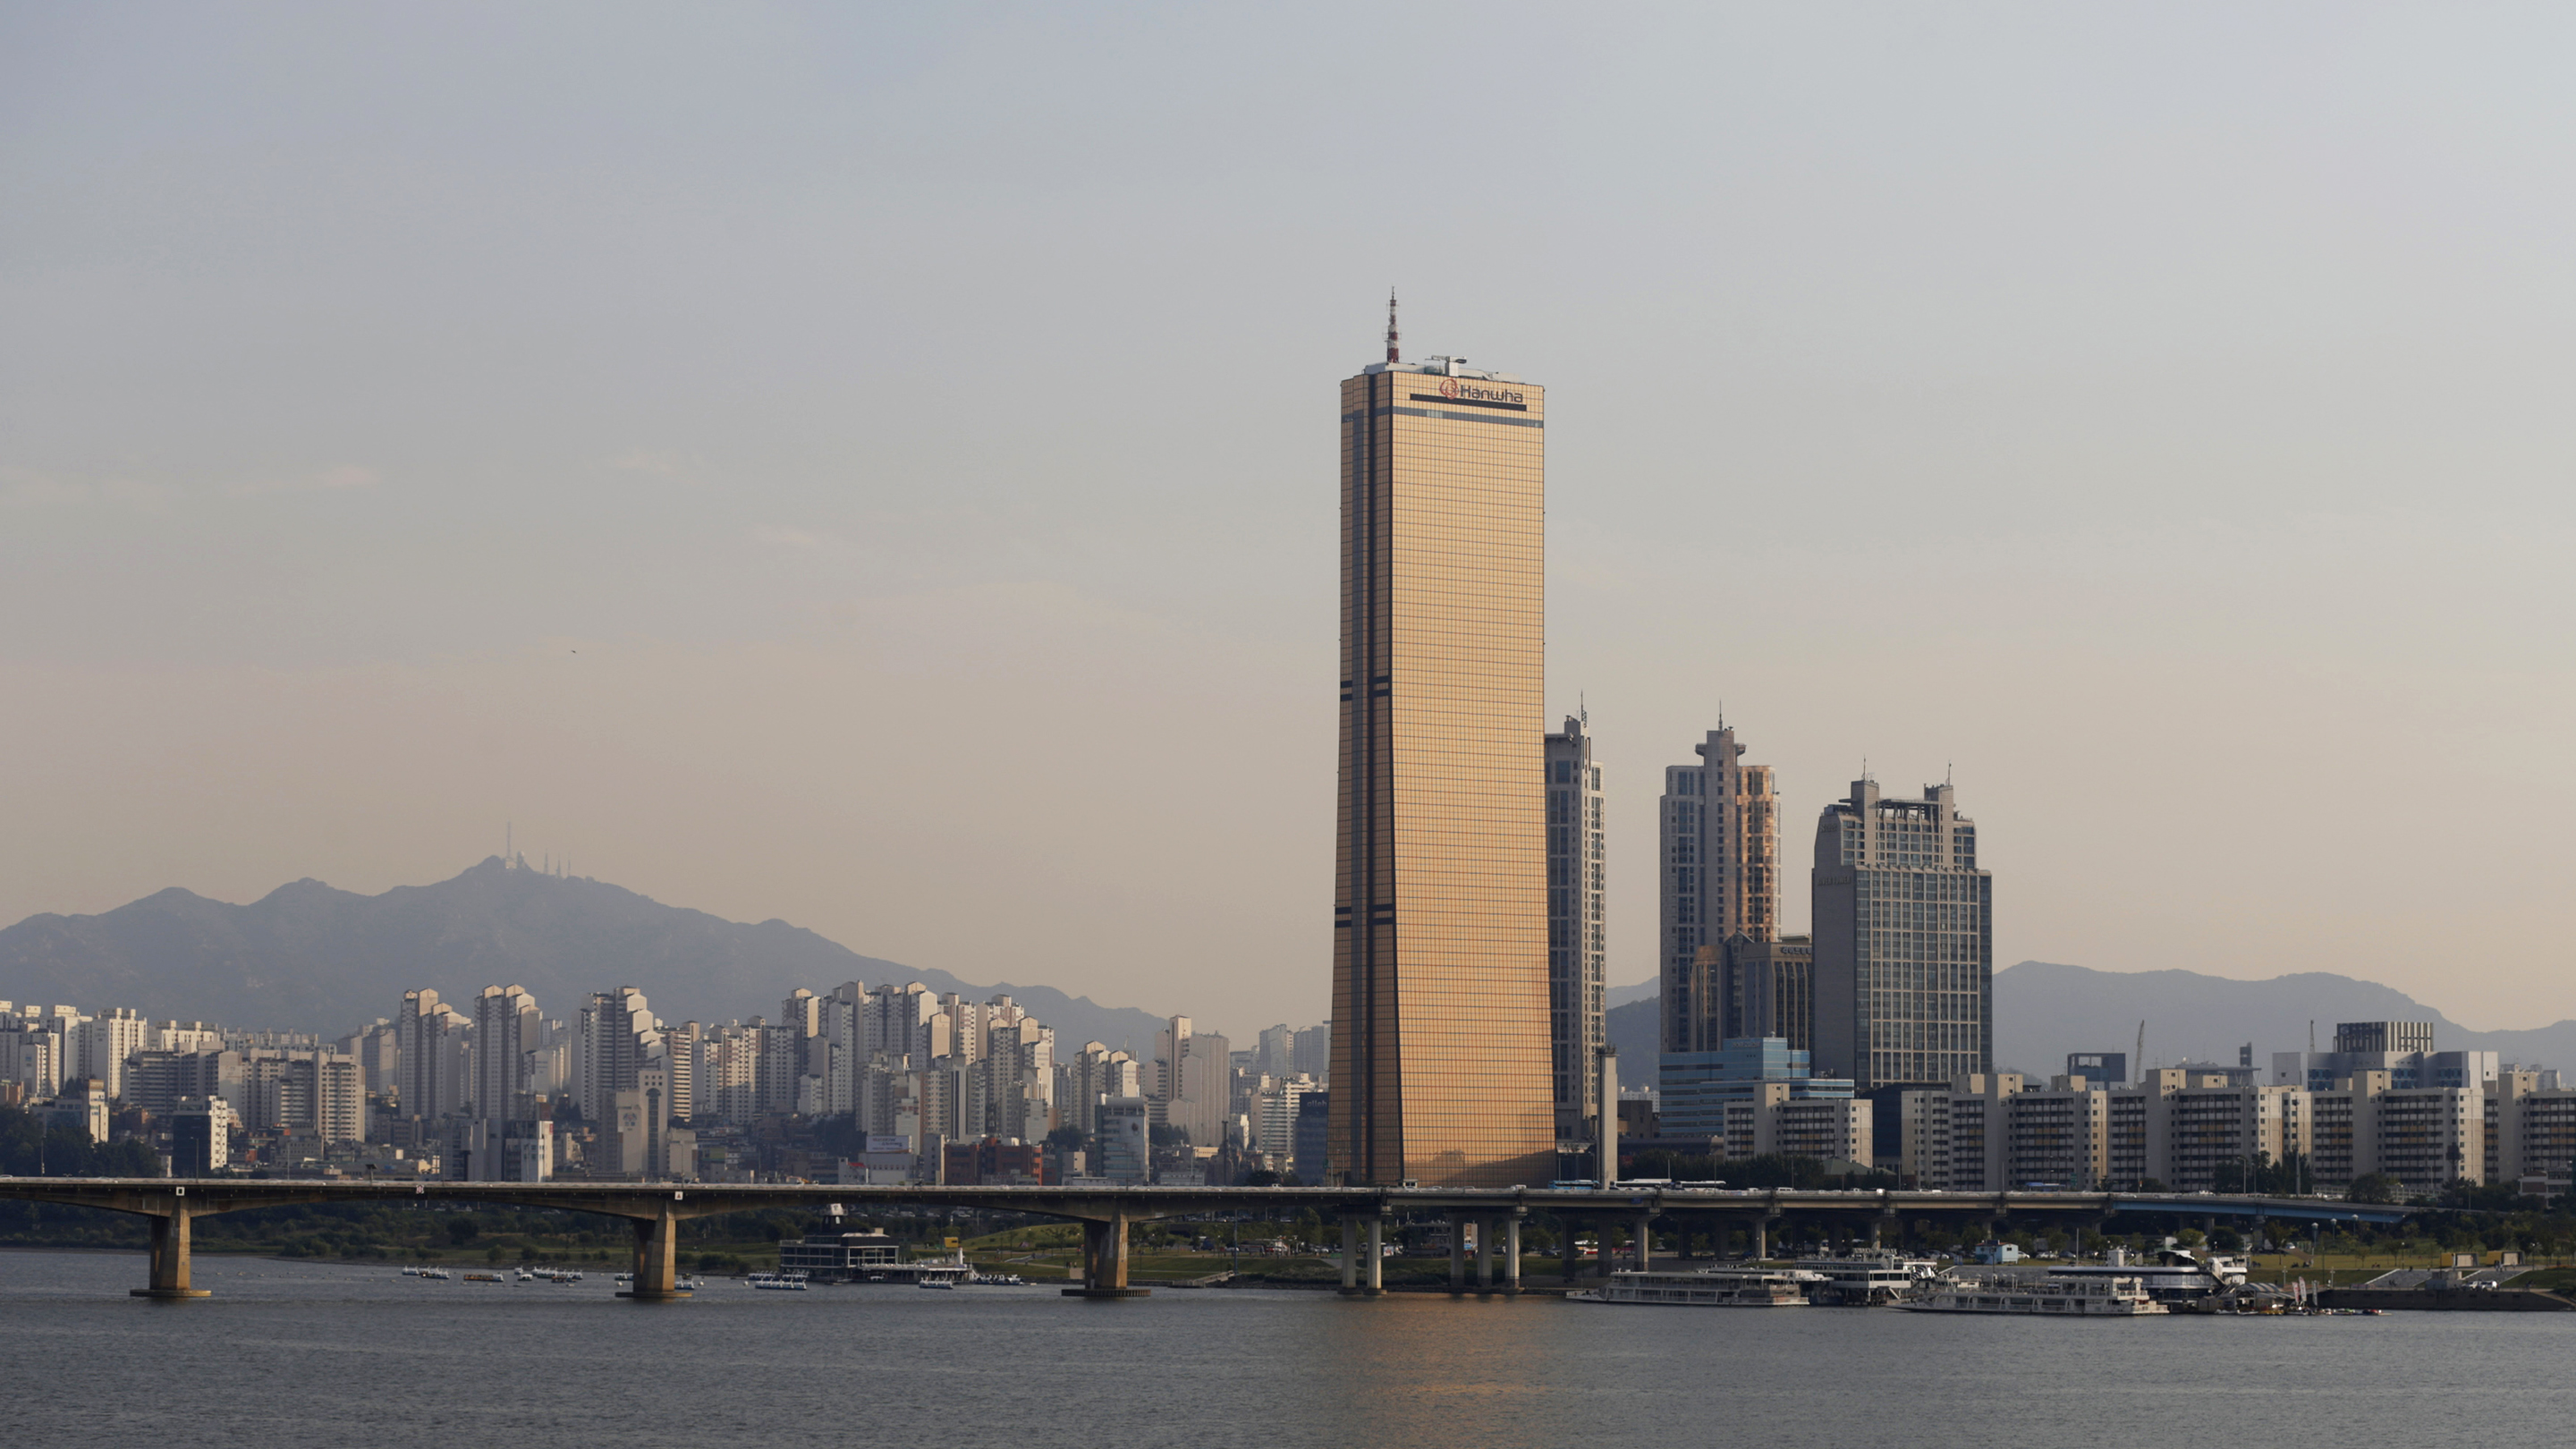 The 63 Building or the Hanhwa 63 City owned by Hanwha Life Insurance is seen on Yeouido island across the Han River at sunset in central Seoul